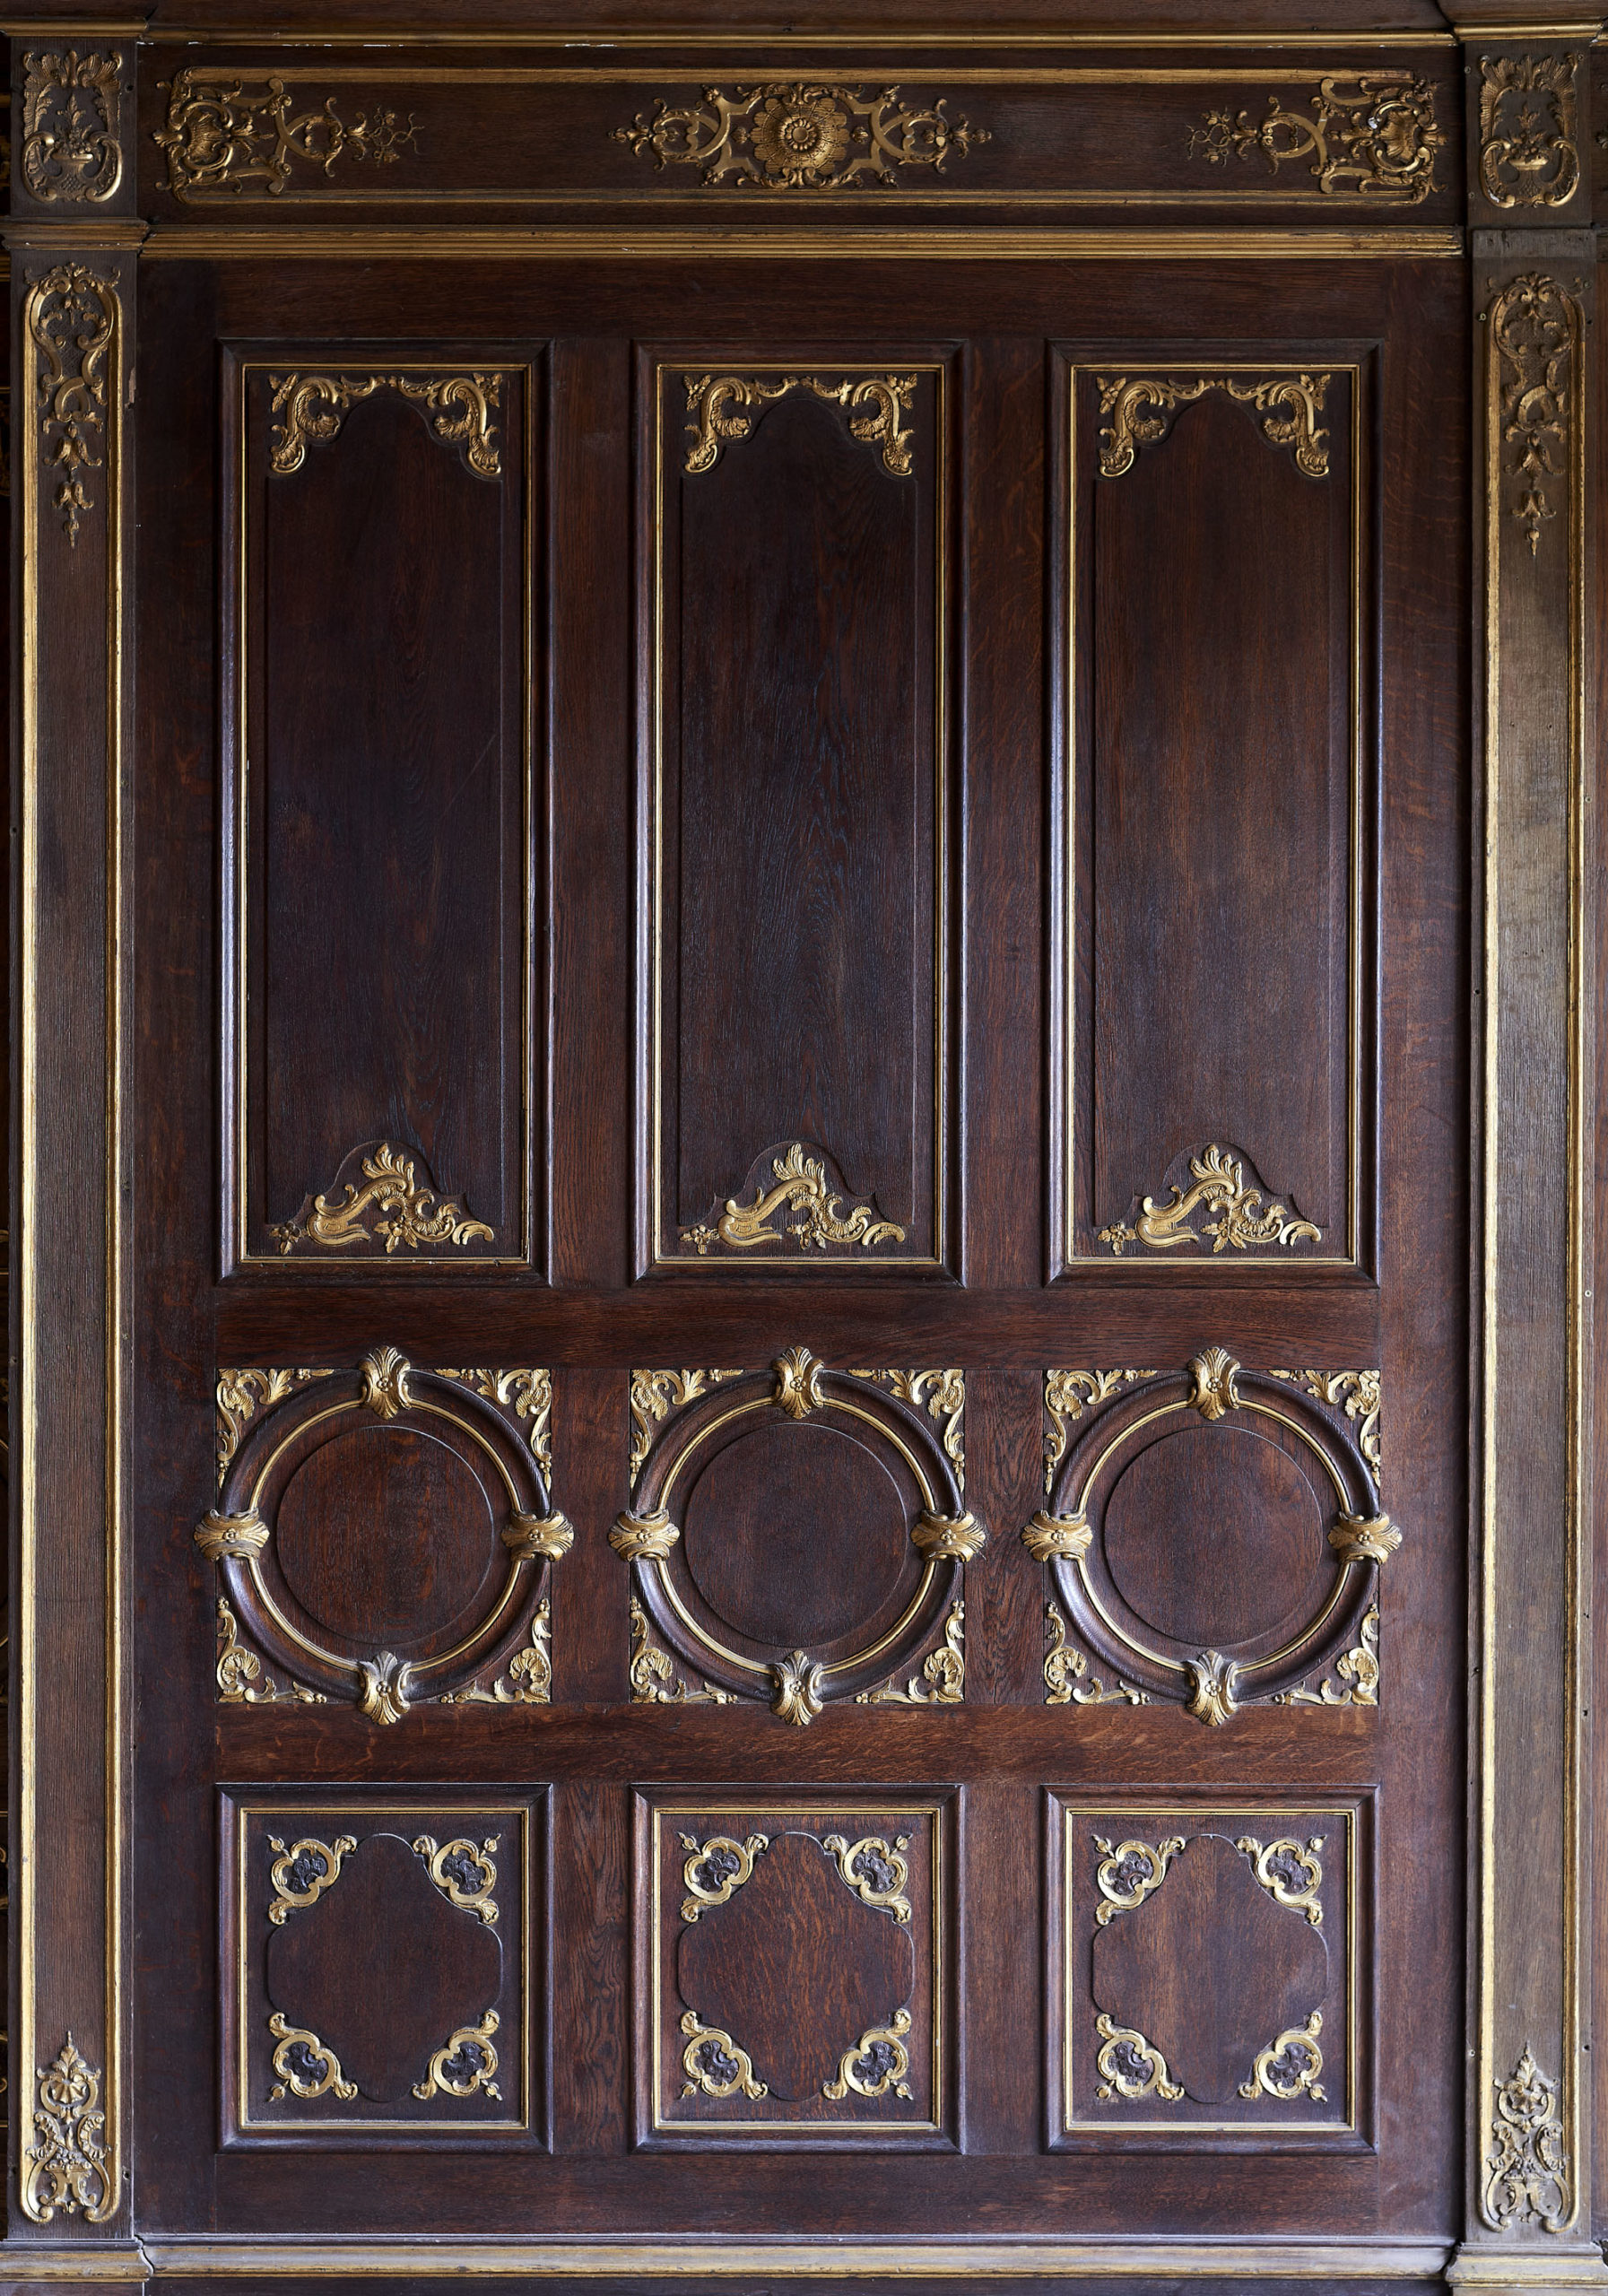 A spectacular French parcel-gilt oak panelled dining room,-105362